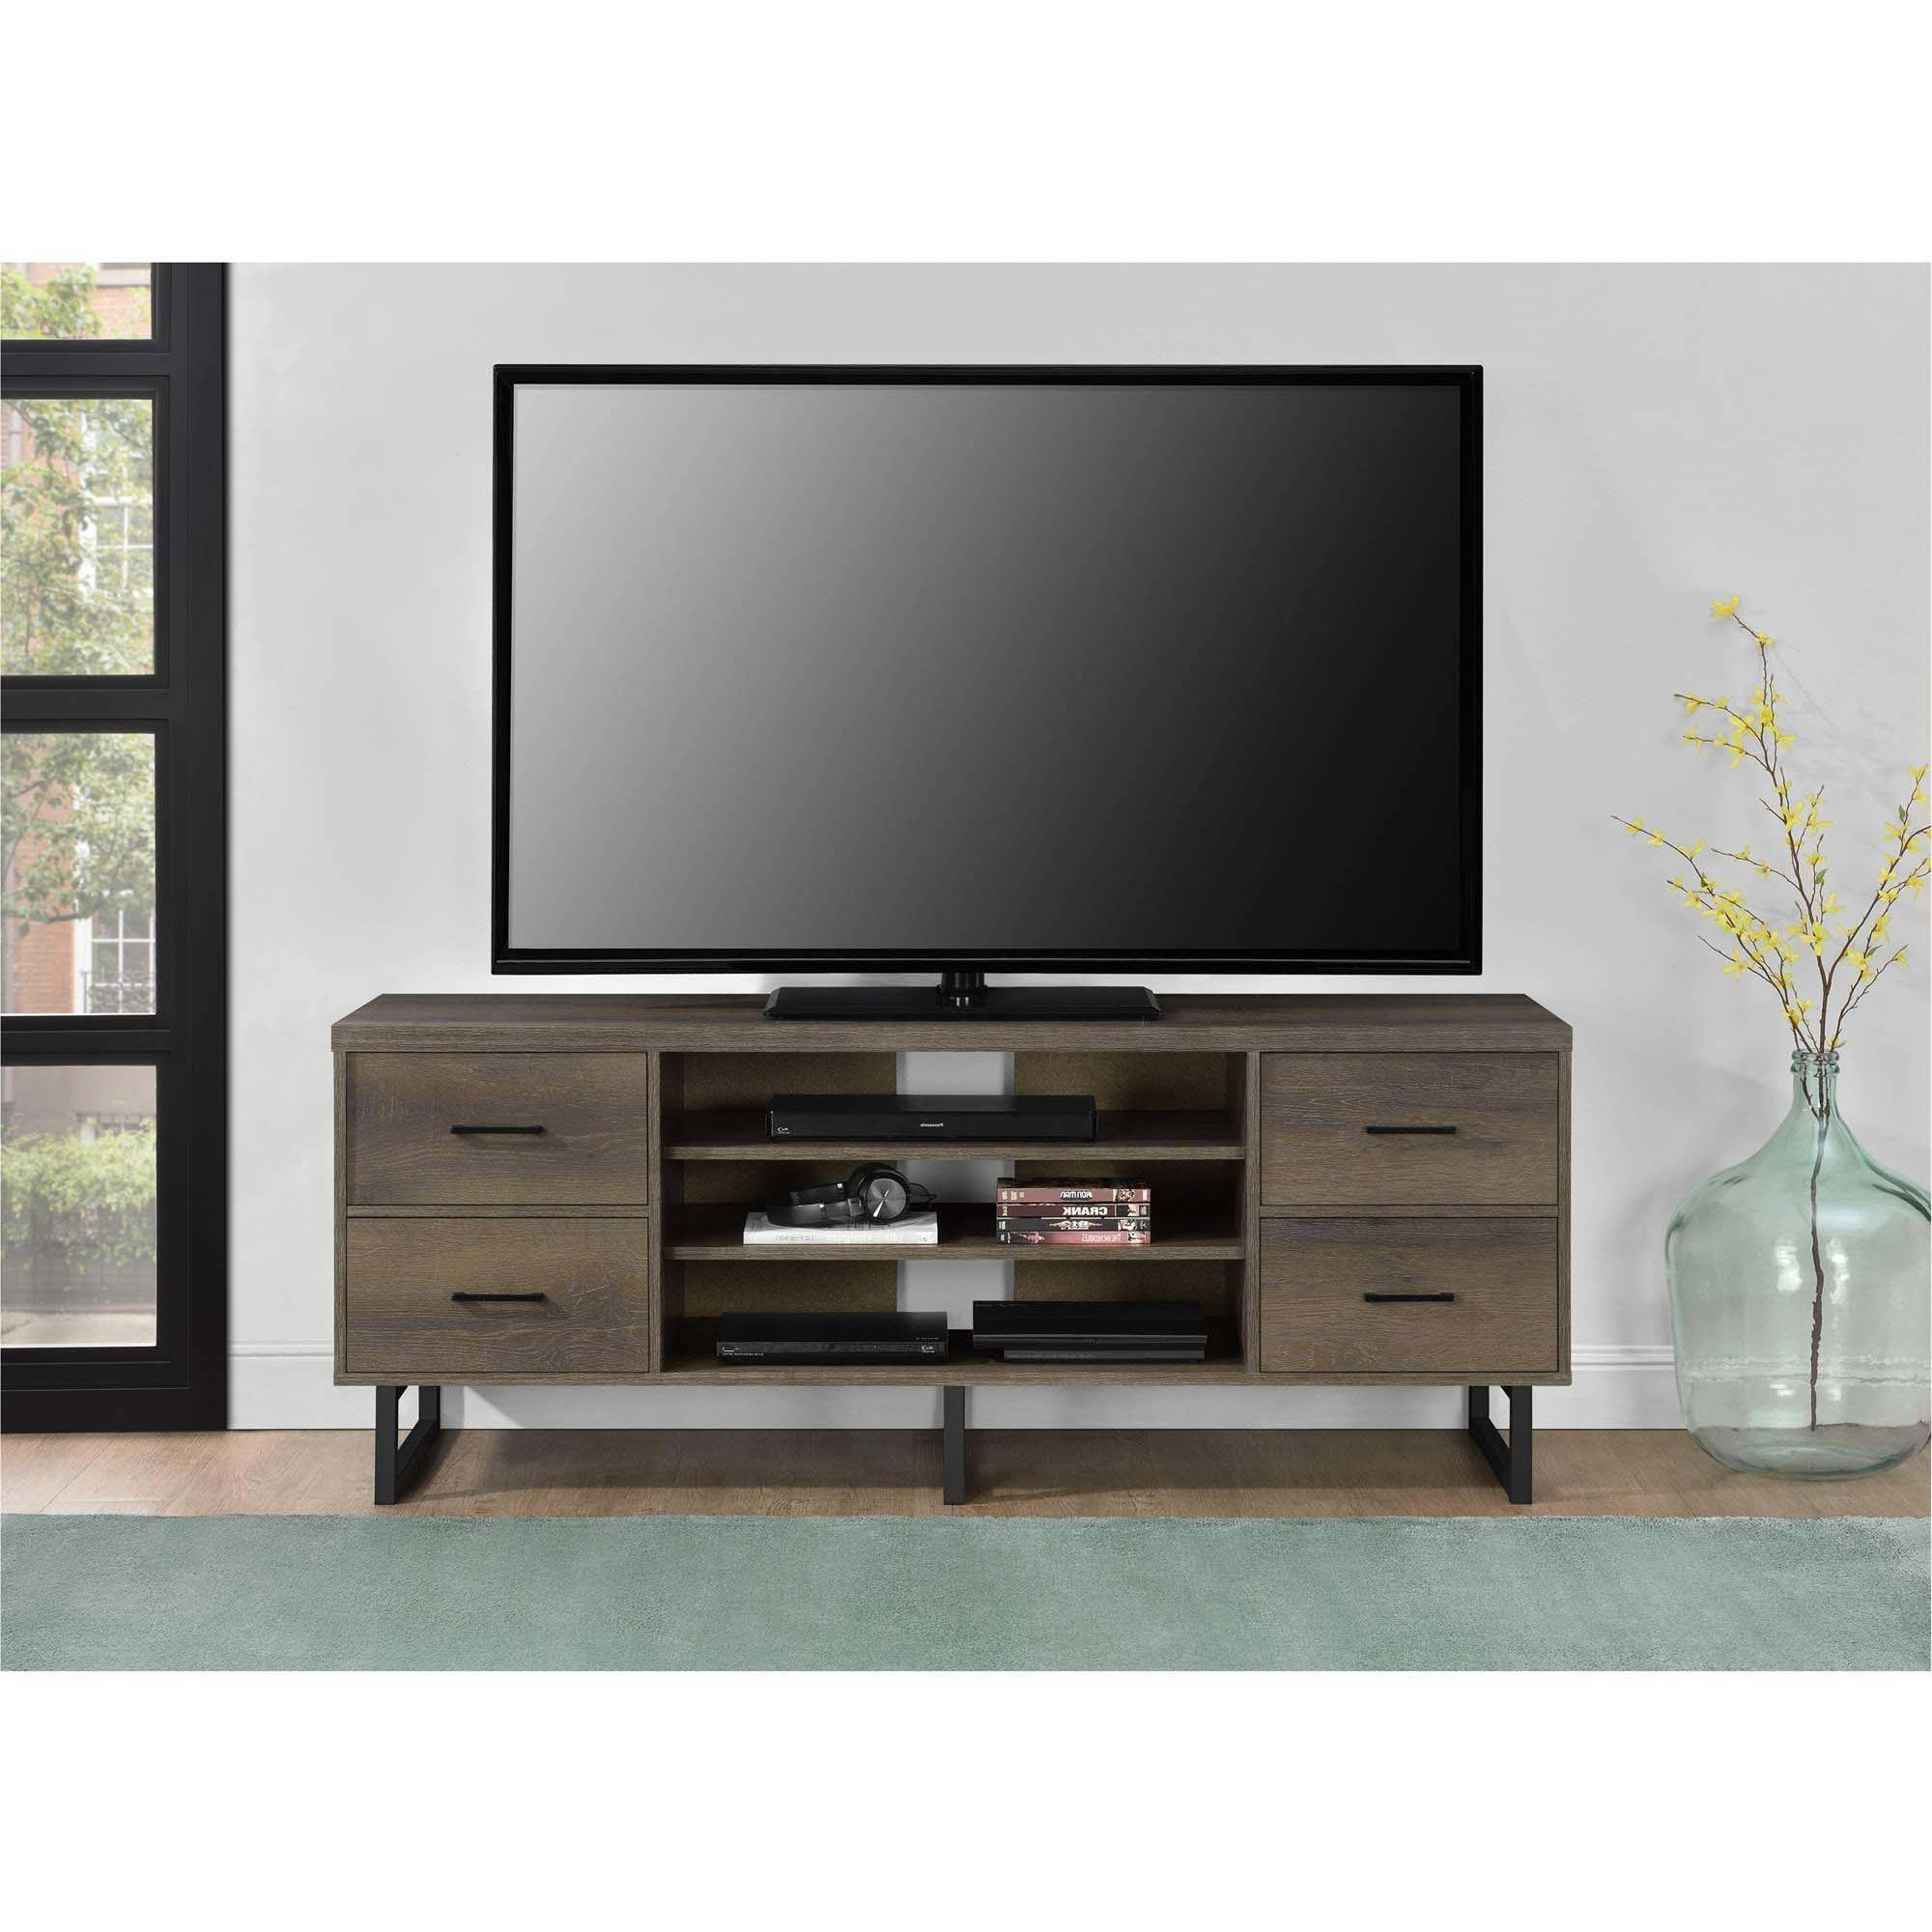 """Ameriwood Home Candon Tv Stand With Bins For Tvs Up To 60 Throughout Ahana Tv Stands For Tvs Up To 60"""" (View 4 of 20)"""